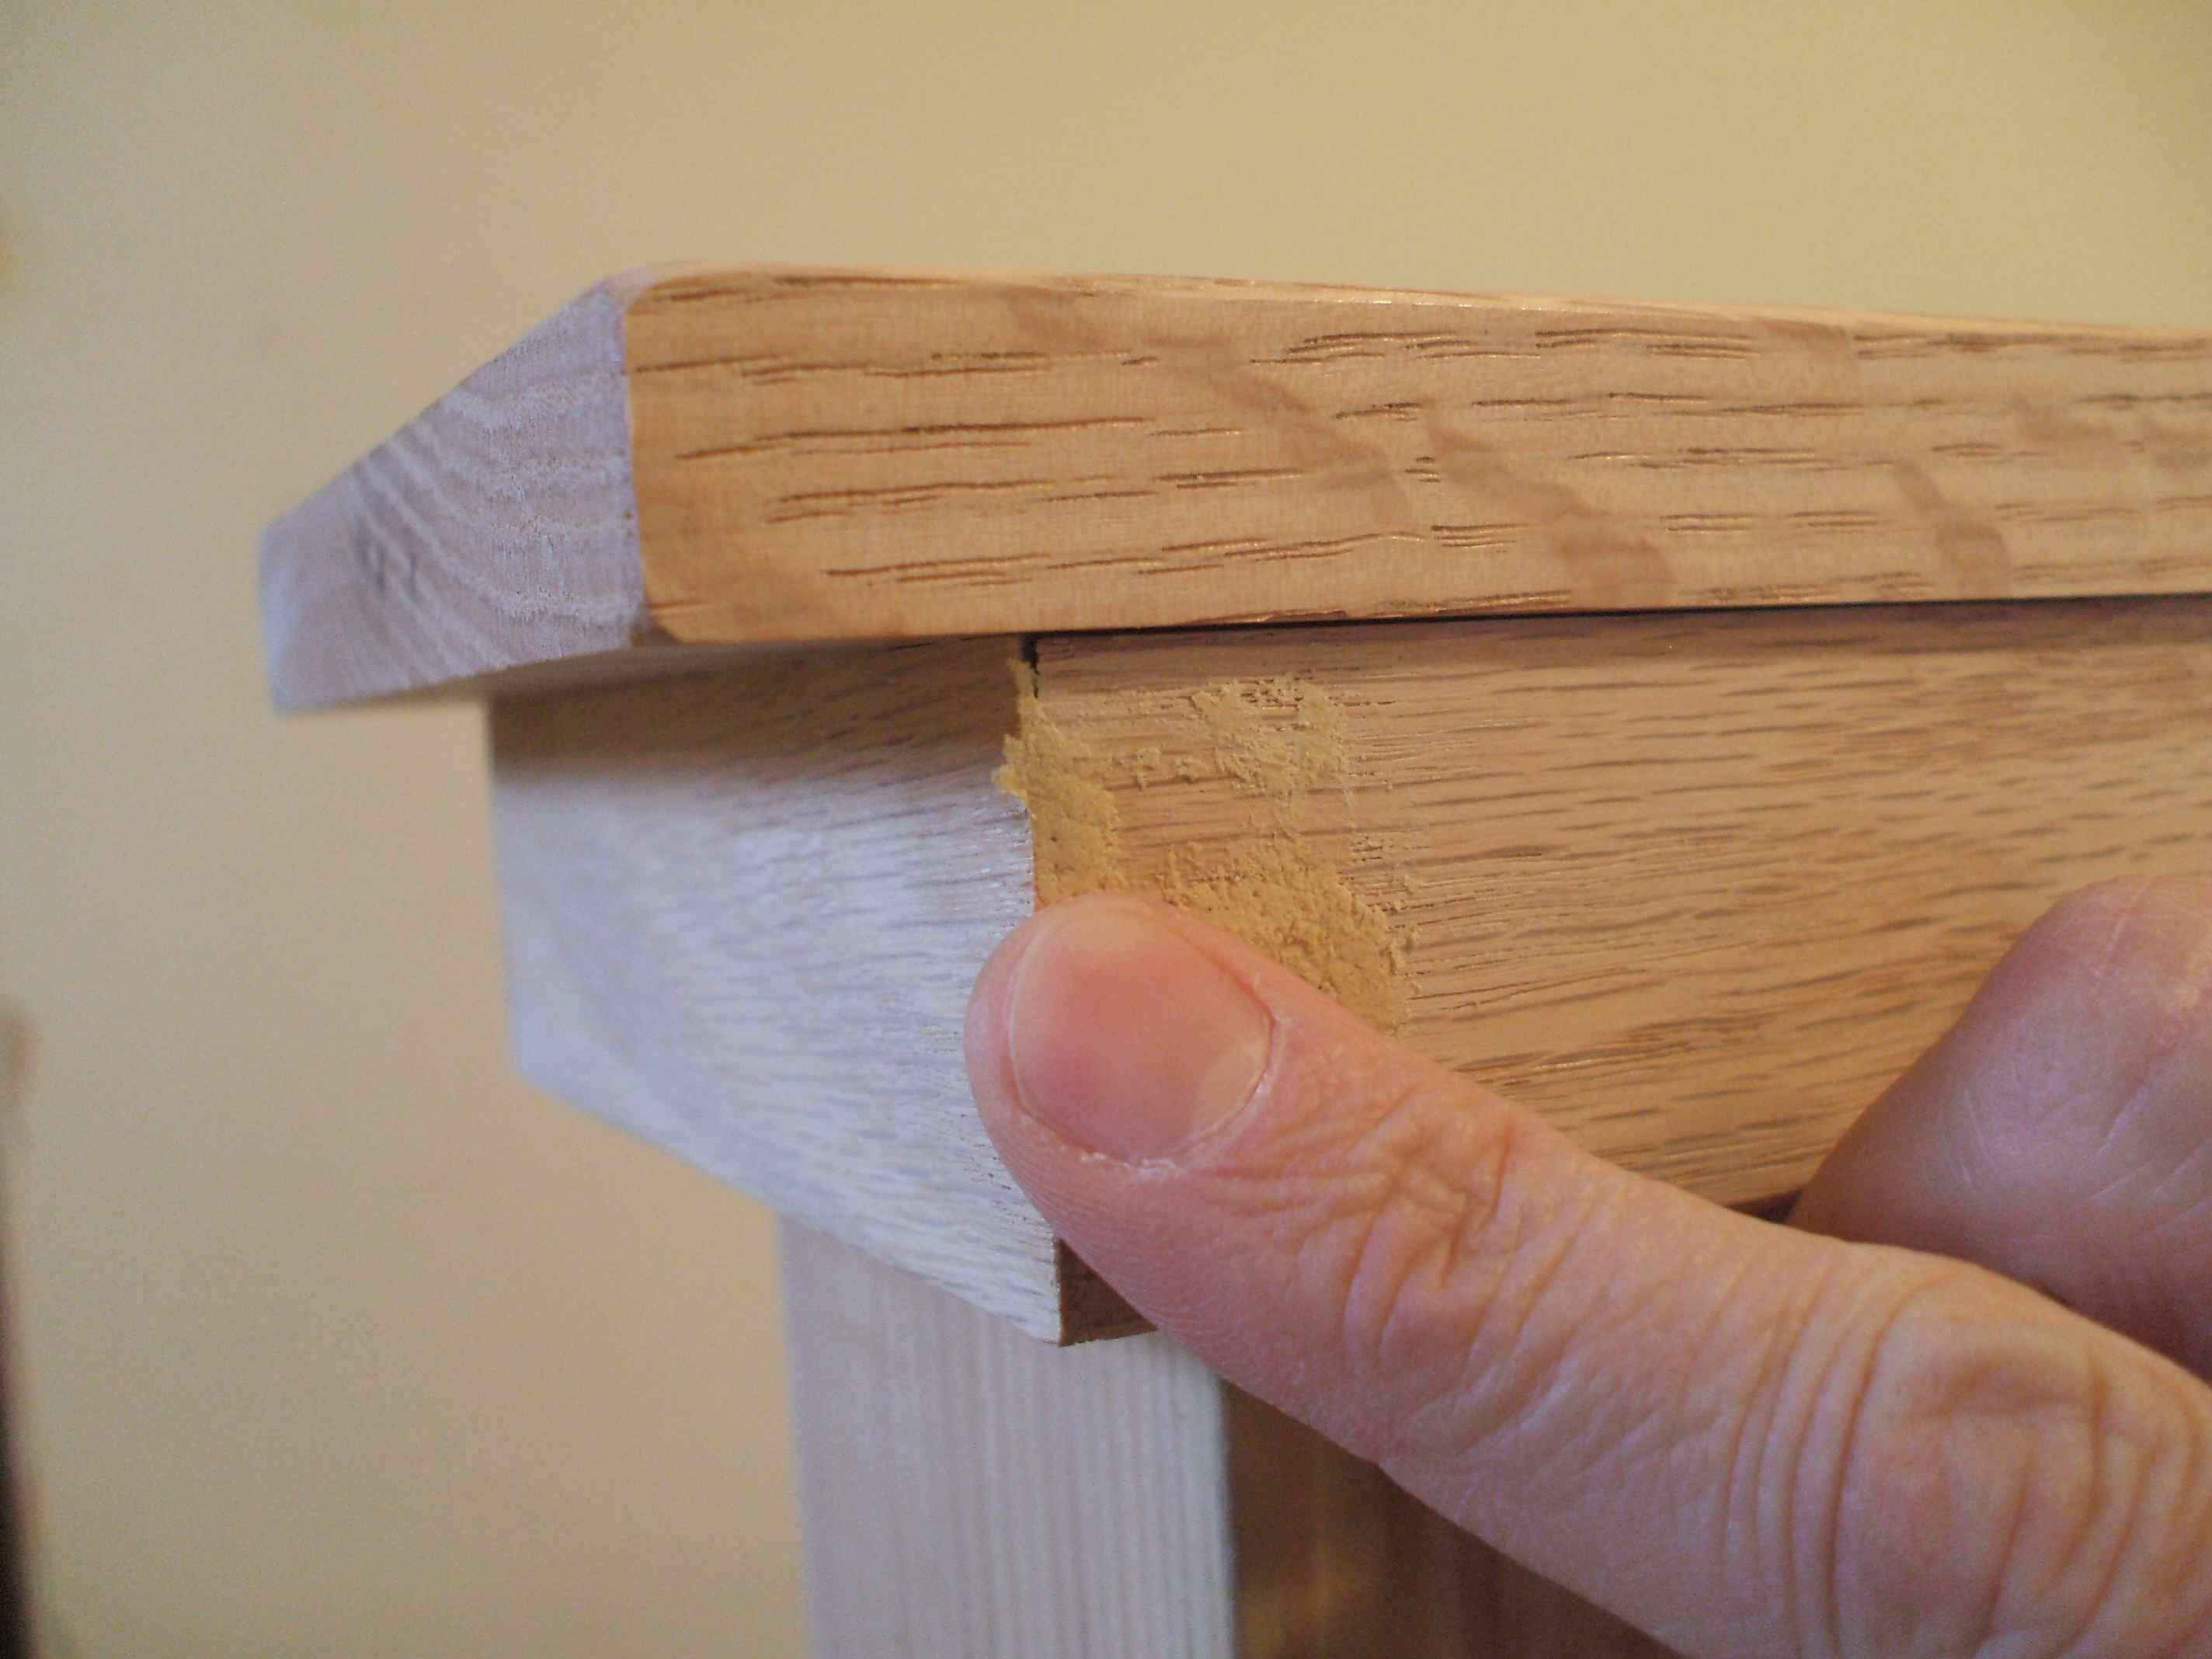 Wood Putty for Strong Bond - Press In With Finger